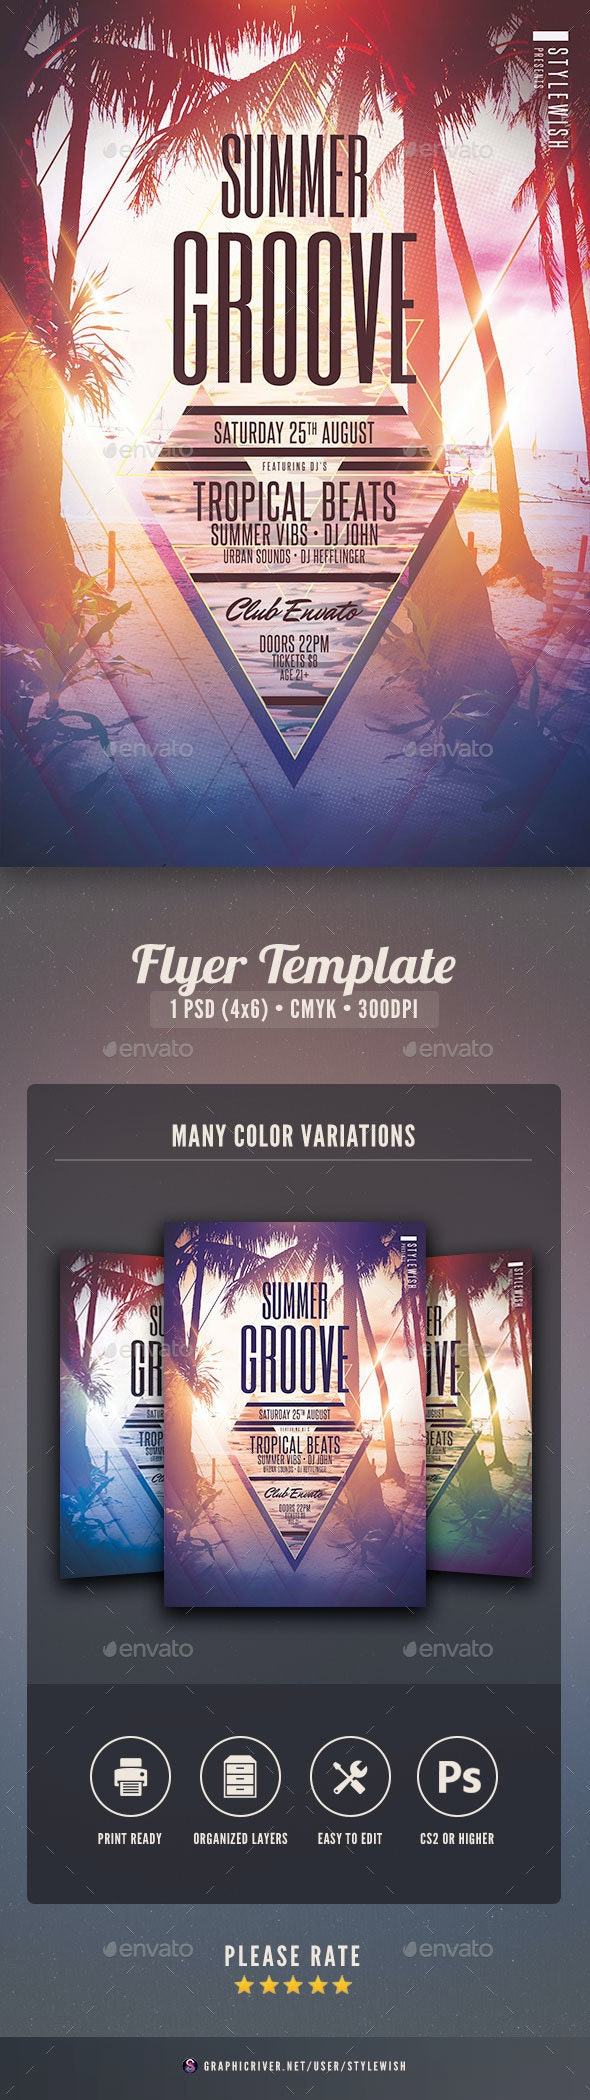 Summer Groove Flyer - Clubs & Parties Events